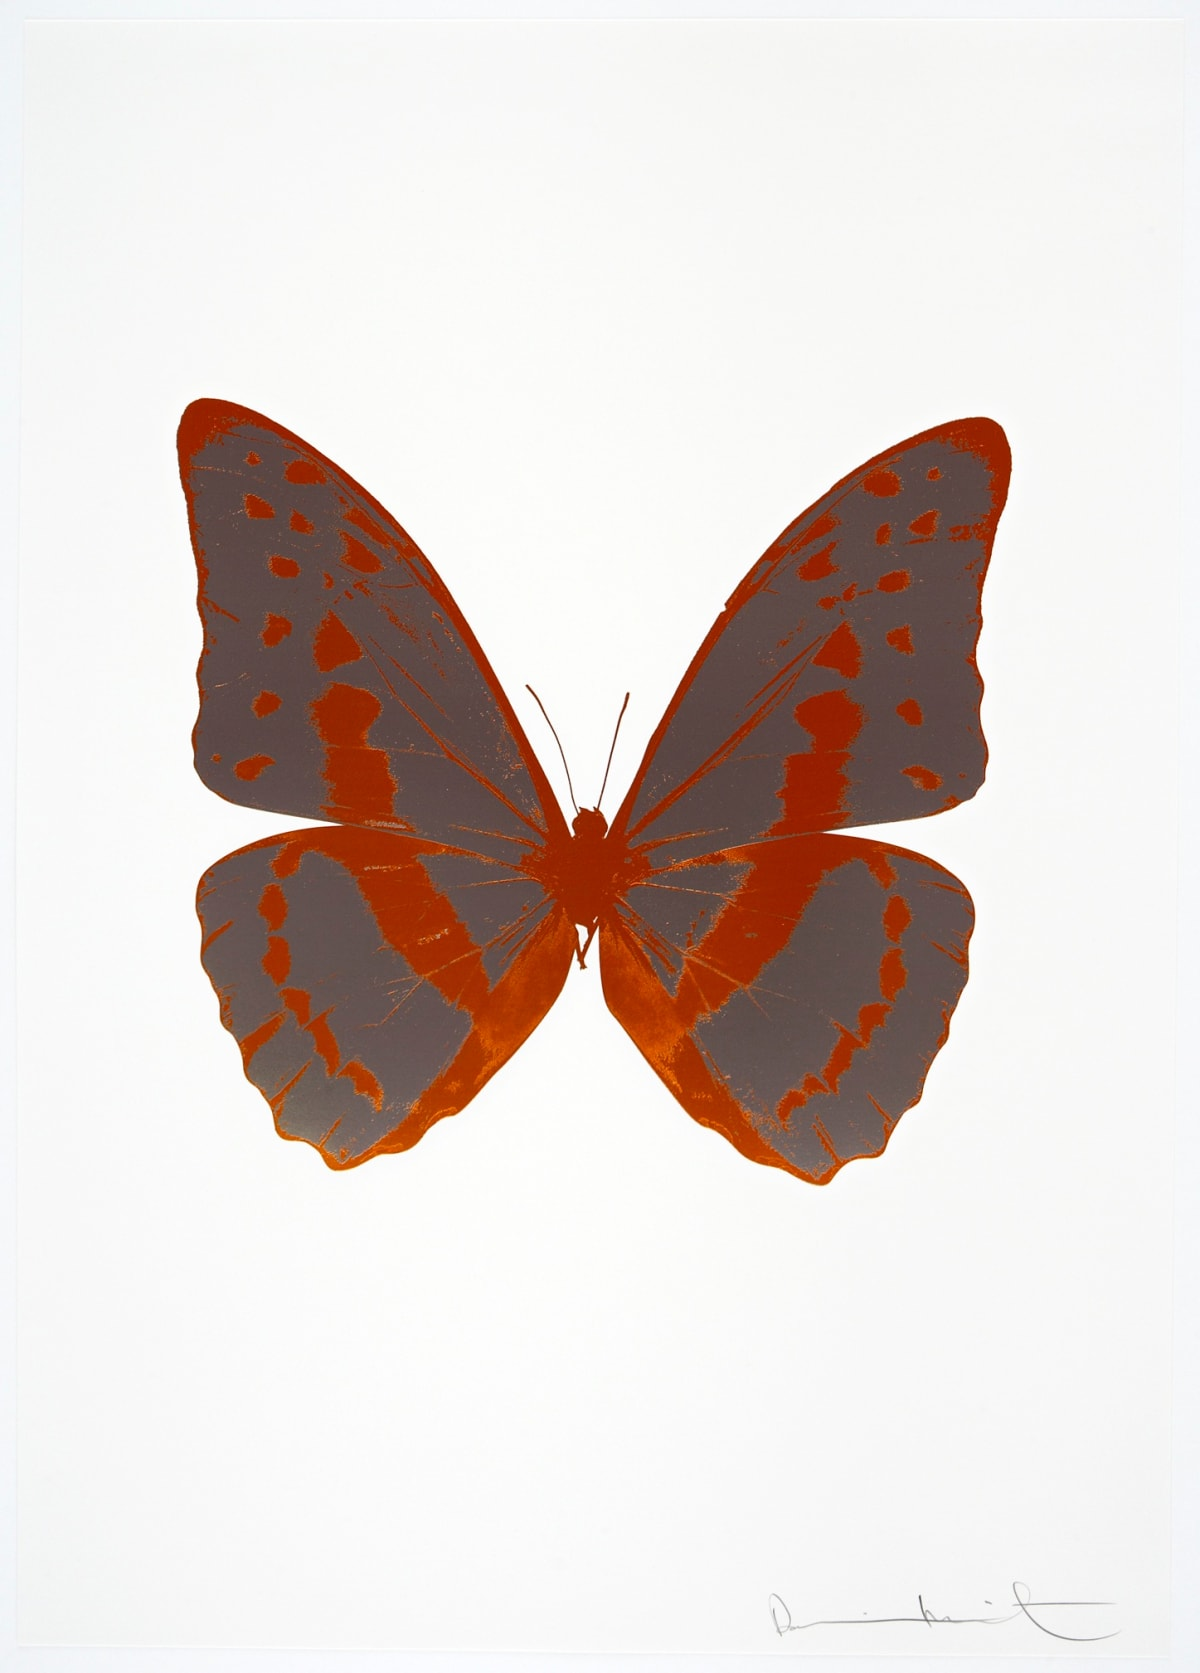 Damien Hirst The Souls III - Gunmetal/Prairie Copper/Prairie Copper, 2010 2 colour foil block on 300gsm Arches 88 archival paper. Signed and numbered. Published by Paul Stolper and Other Criteria 72 x 51cm OC7960 / 660-63 Edition of 15